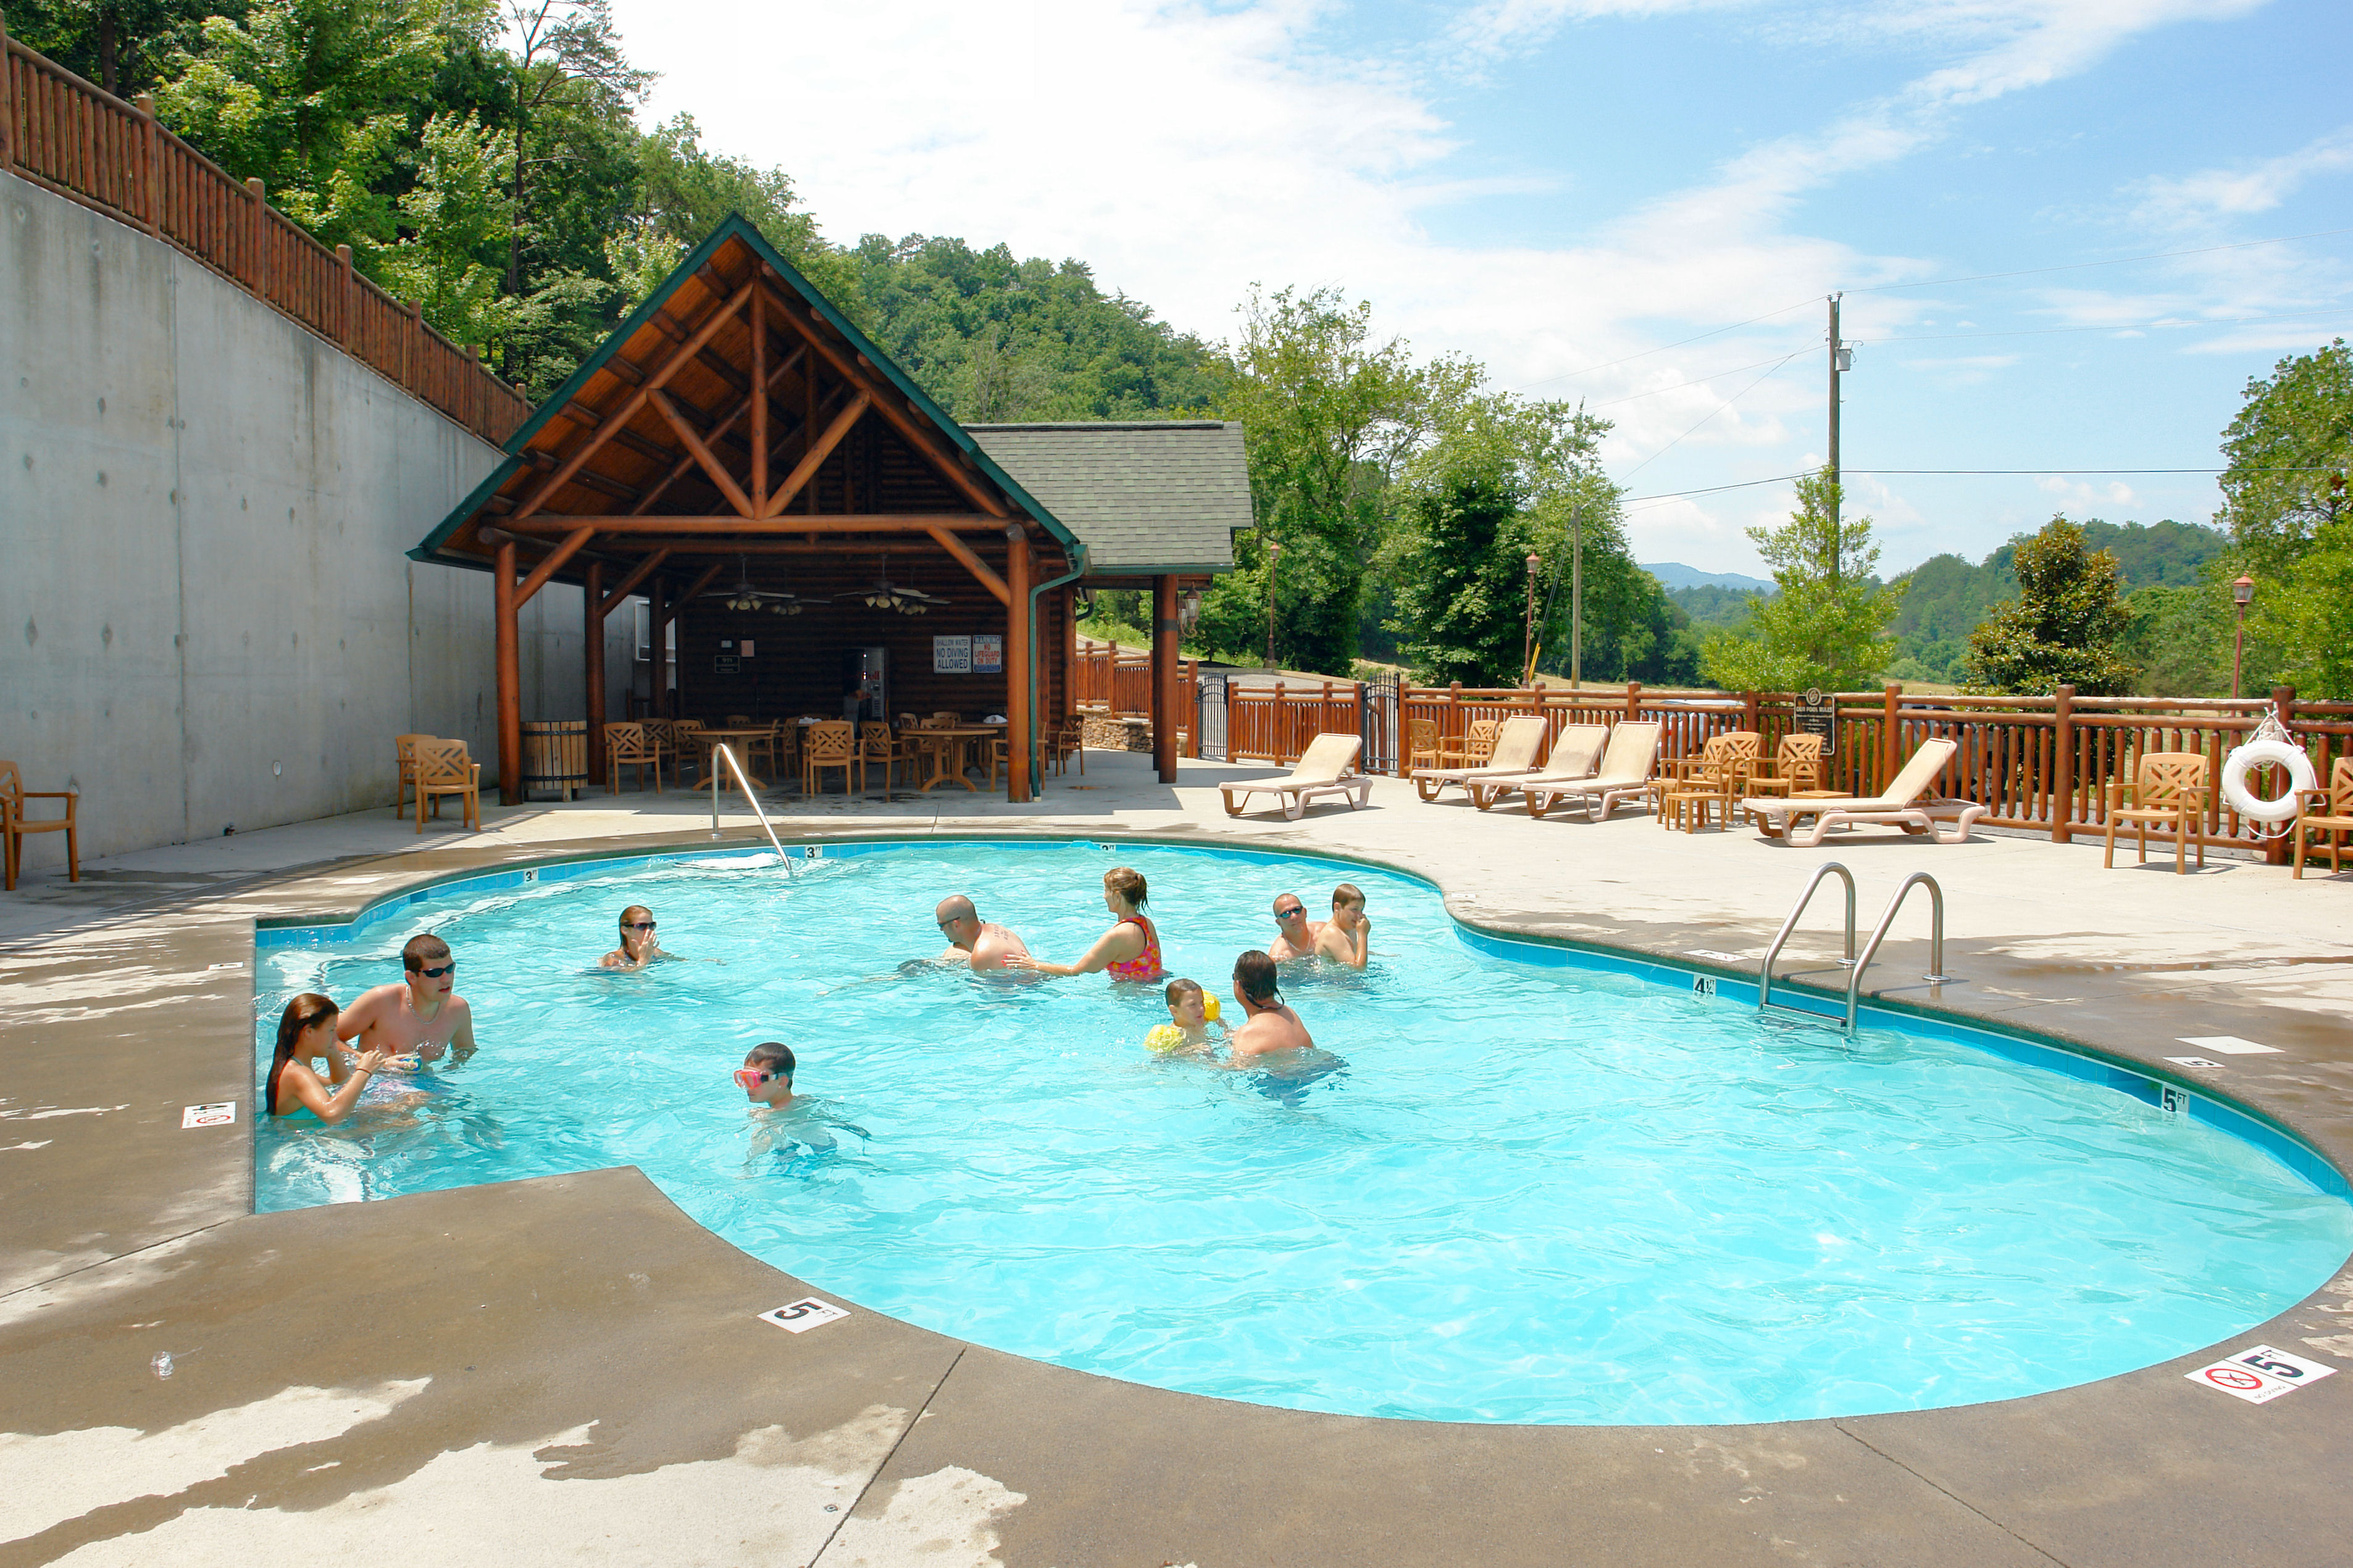 cabins rising redawning vacation pool tennessee indoor sevierville lodge property eagle with in rental